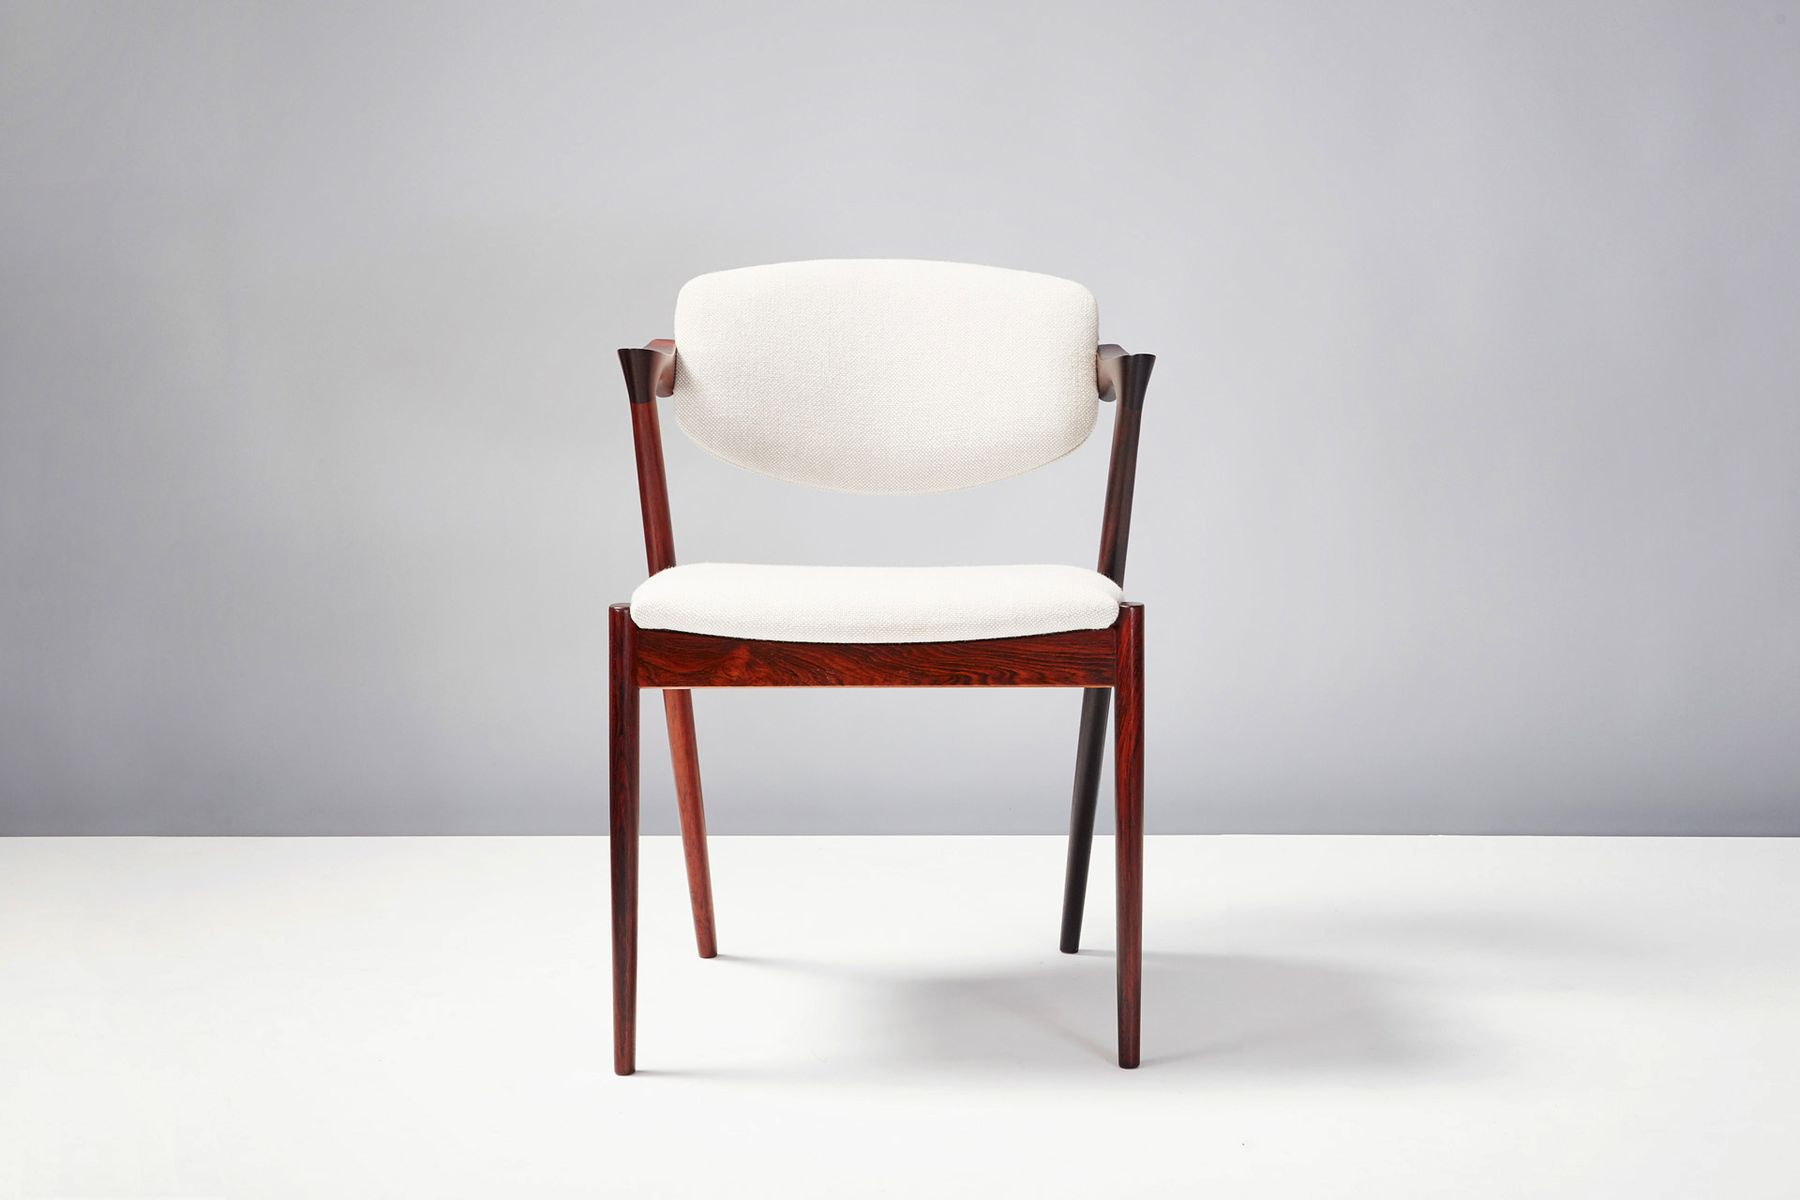 Model 42 Dining Chairs By Kai Kristiansen For Skovman Andersen 1956 Set Of 6 For Sale At Pamono